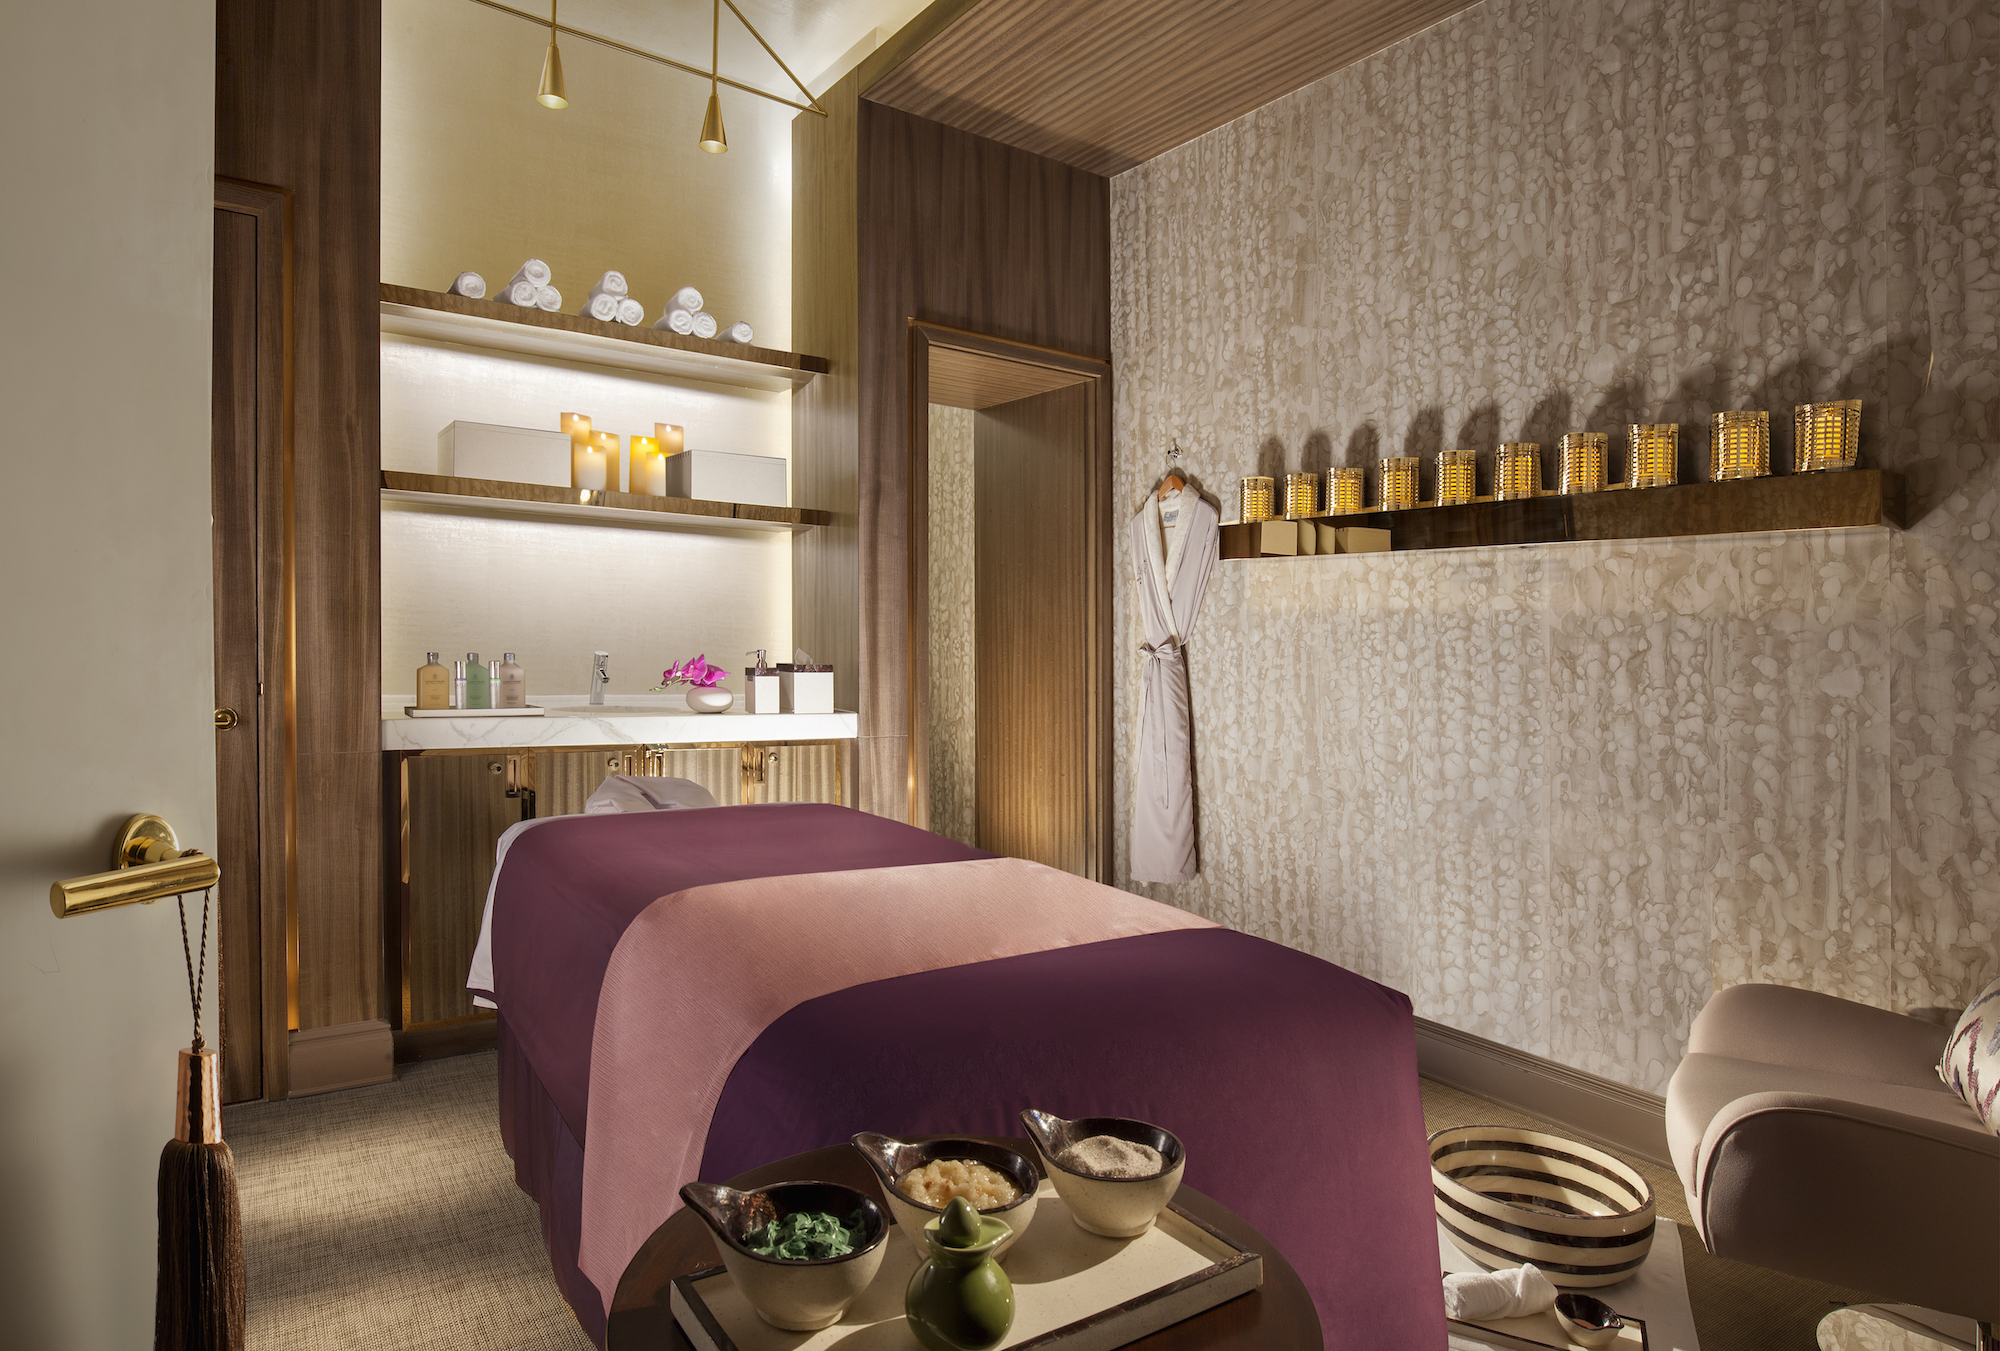 Le Spatique Treatment Room at the Parisian Macao